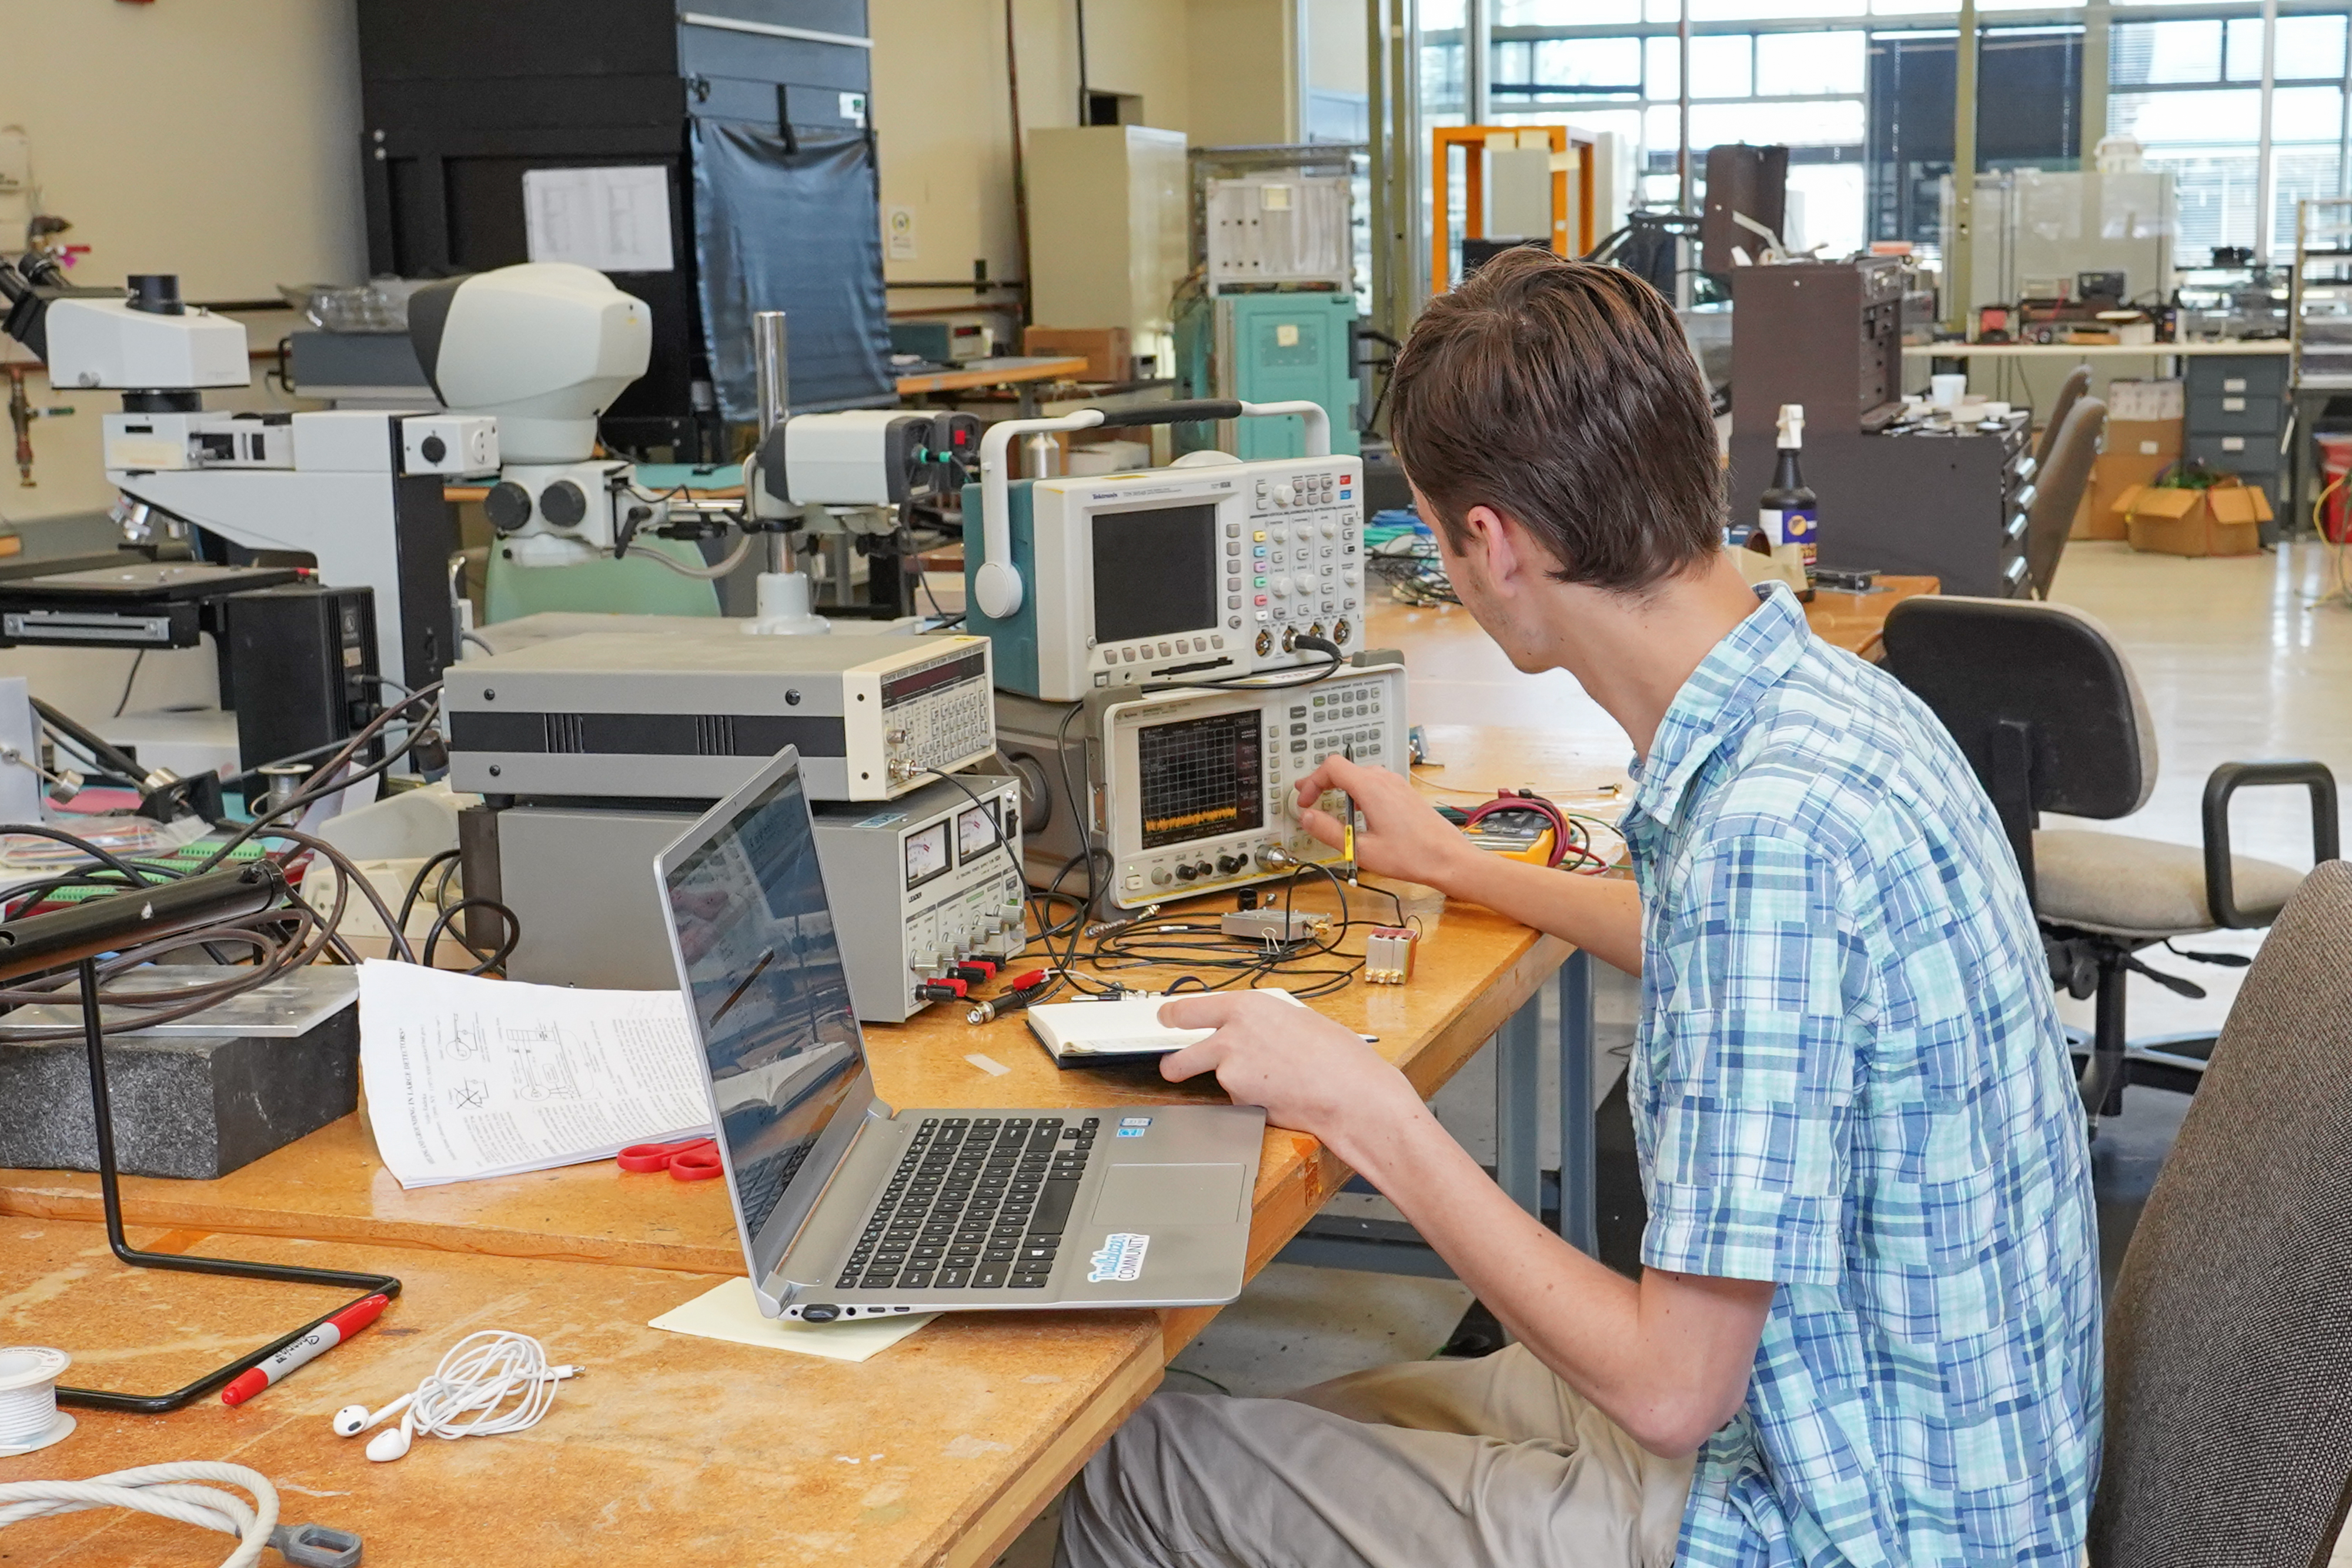 (3/4) Peter Camporeale is a University of Chicago visitor working at Fermilab for CMS. He is analyzing a power spectrum of an amplifier and collecting information about their gain breakdown frequency for later use in his project. people Photo: Leticia Shaddix